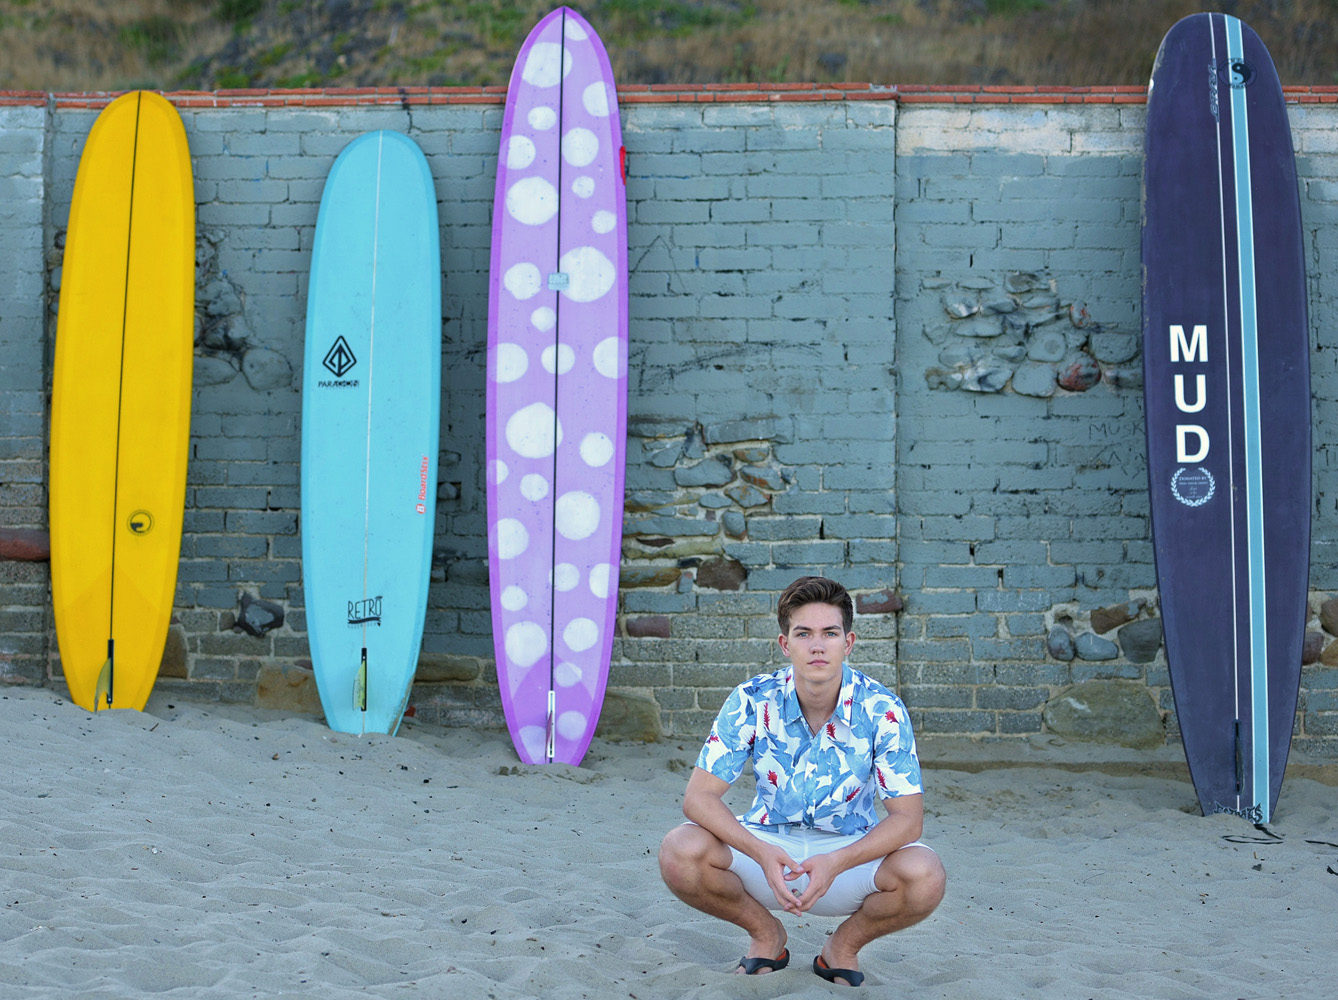 senior boy squatting with surfboards in background